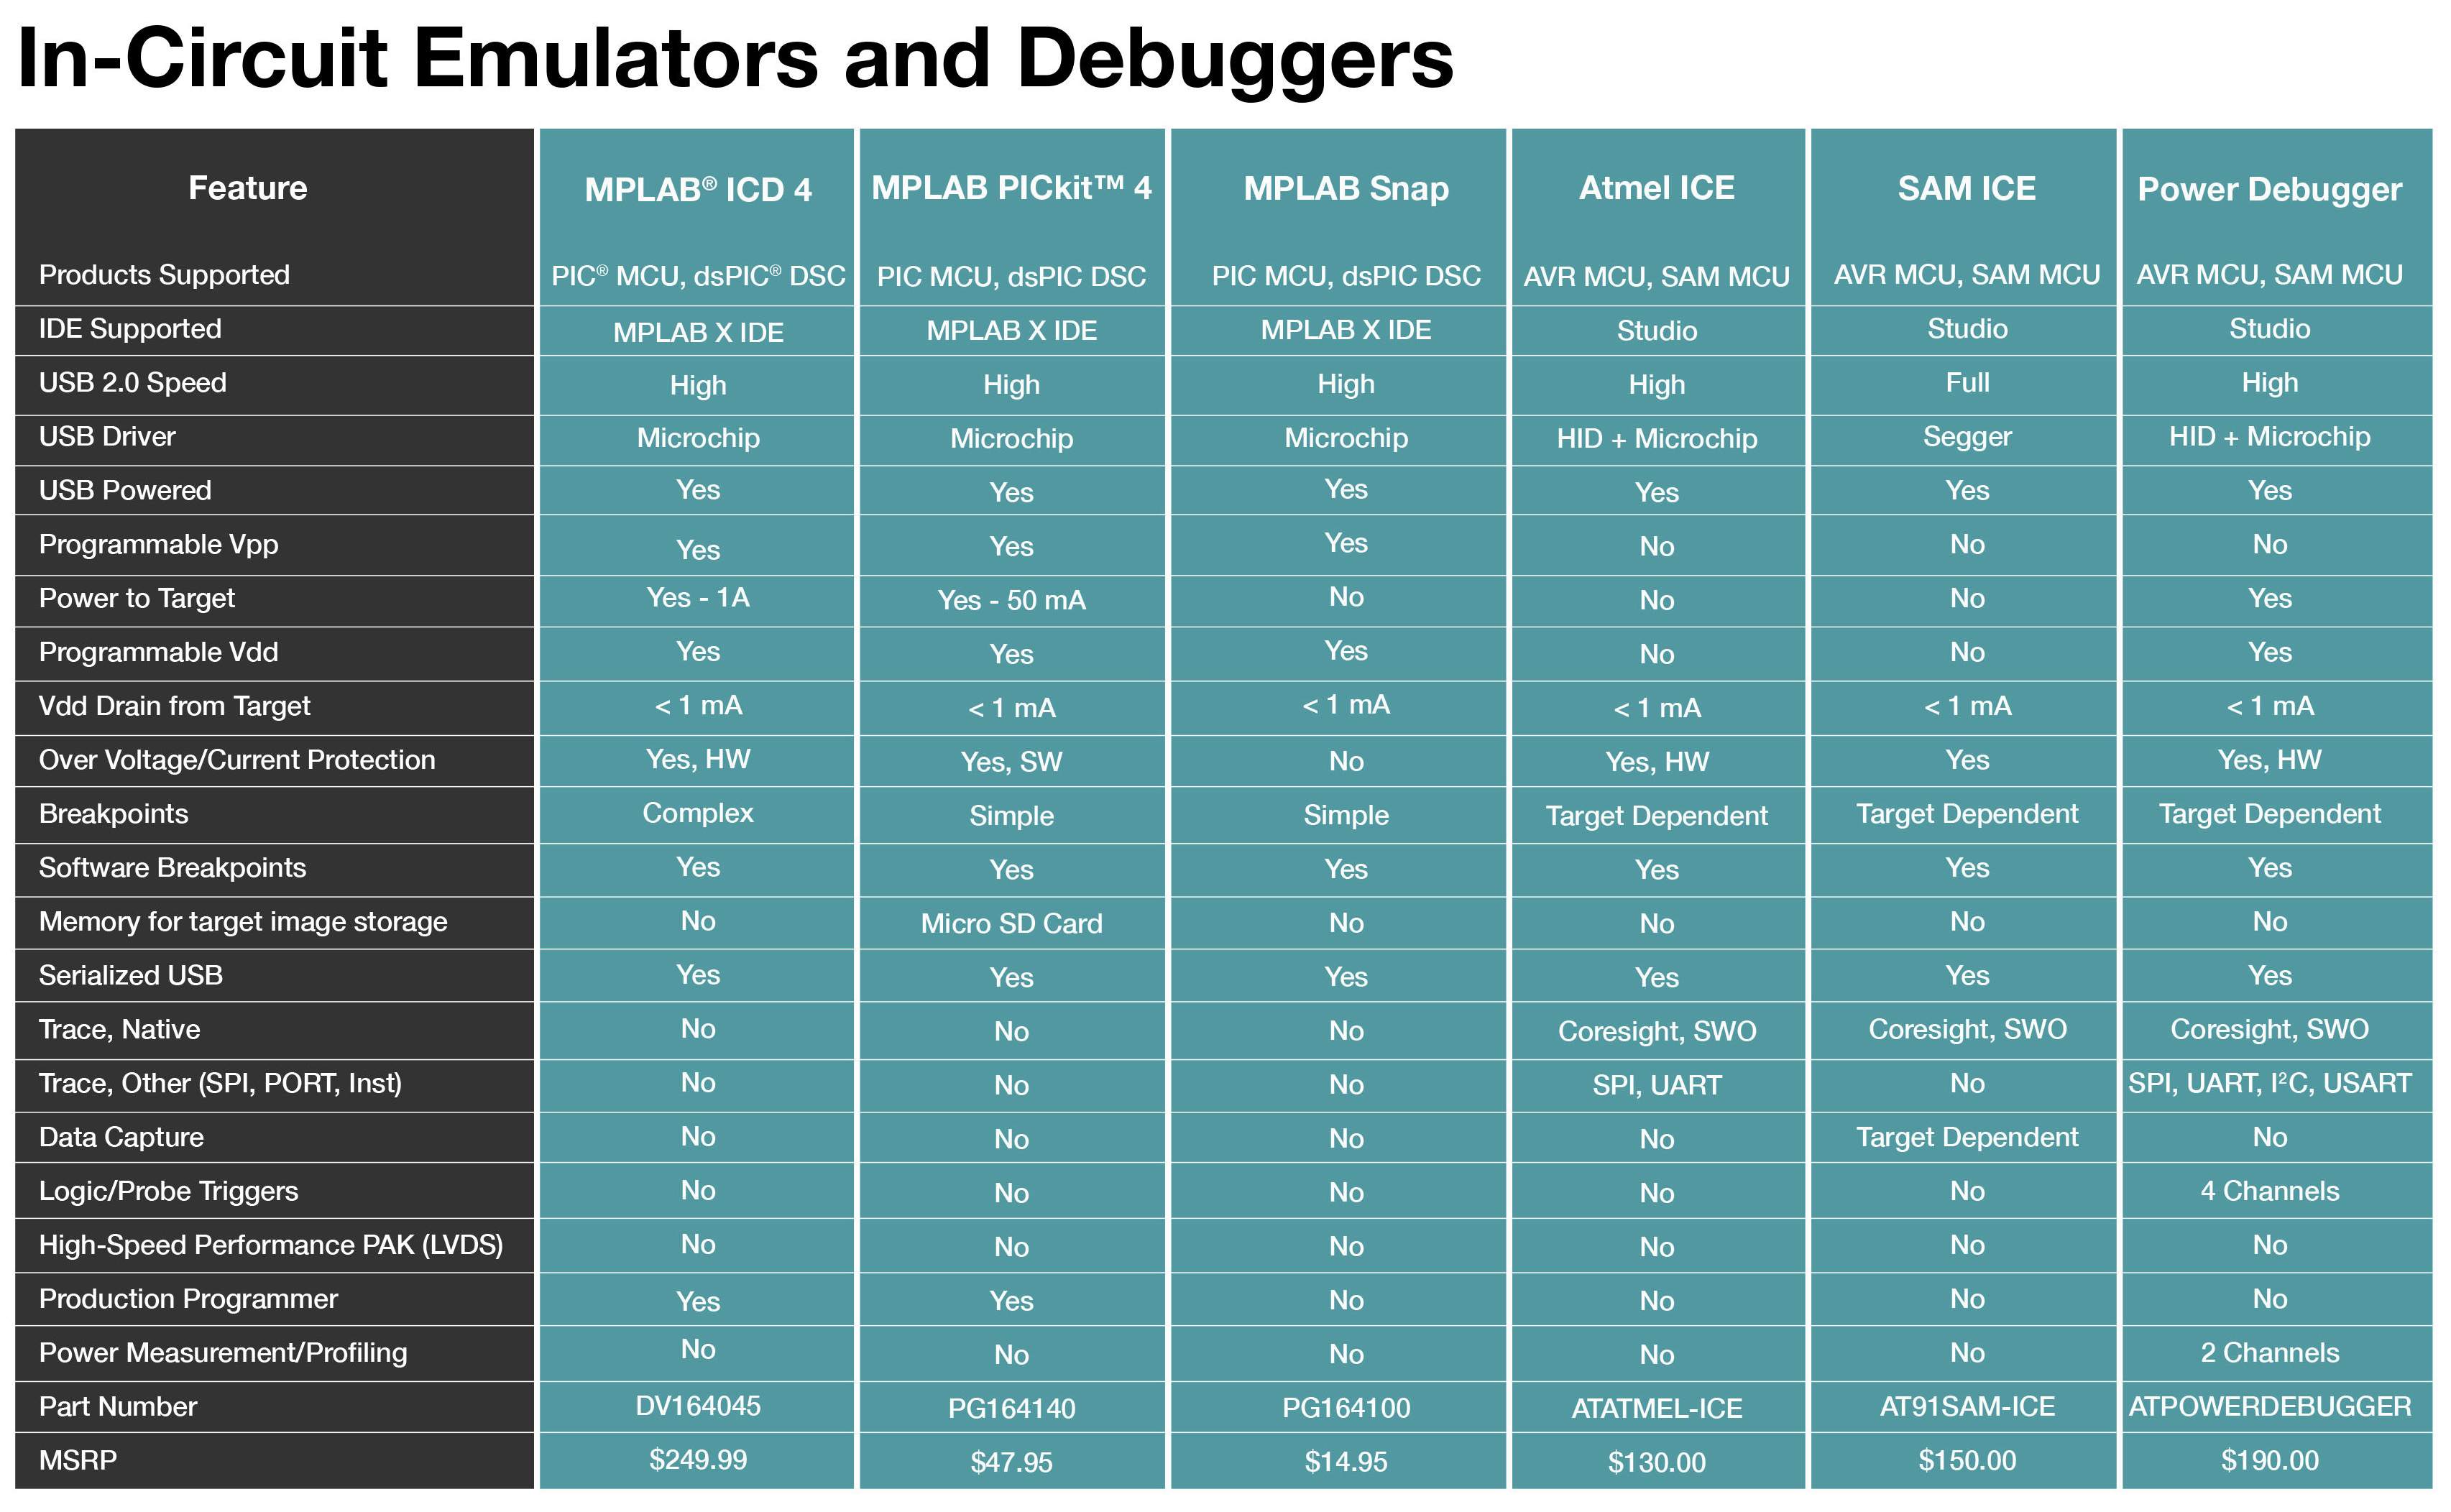 In circuit emulators and debuggers table